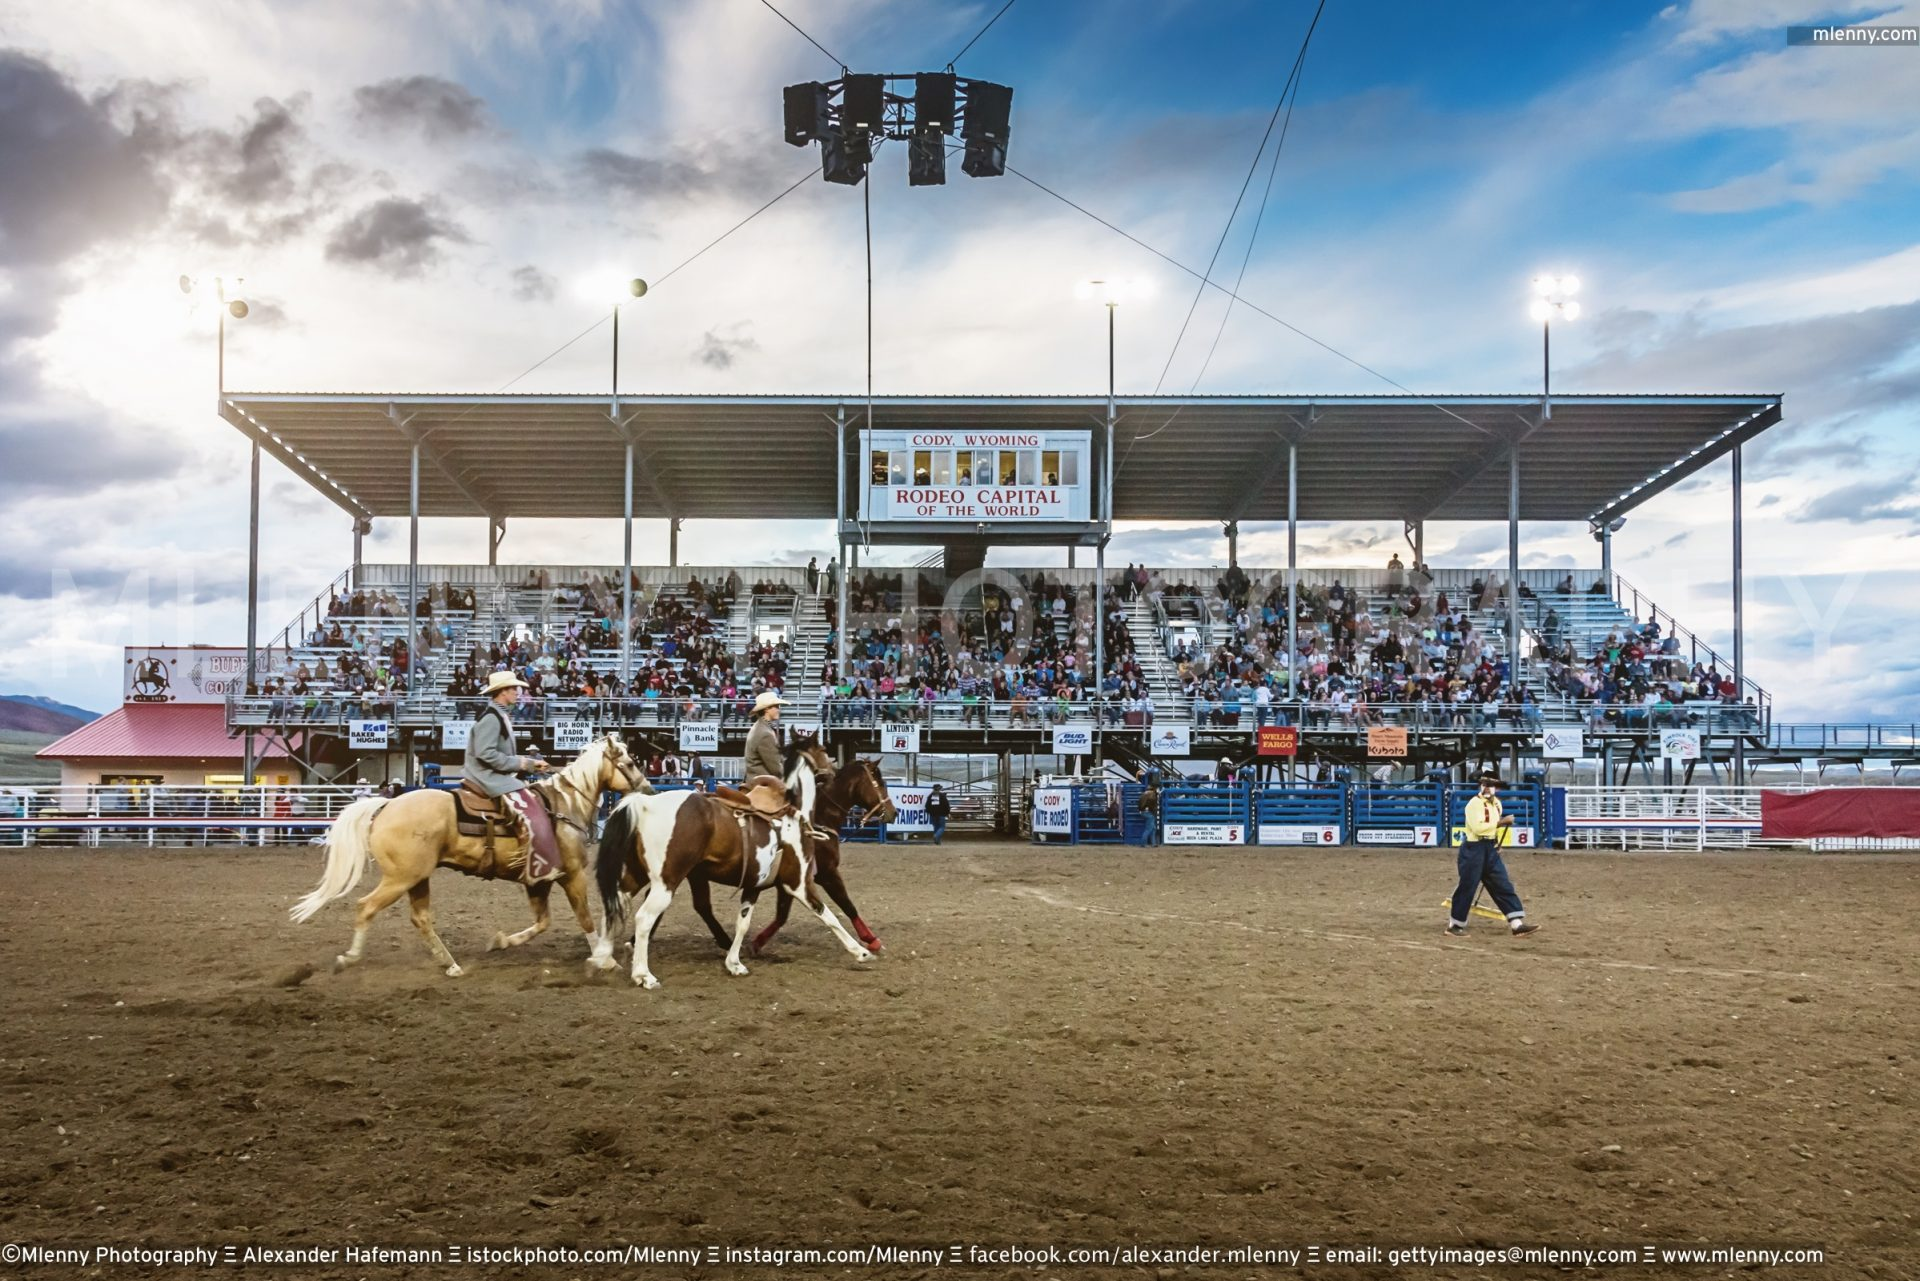 Cowboys Rodeo Stampede Arena, Wyoming USA